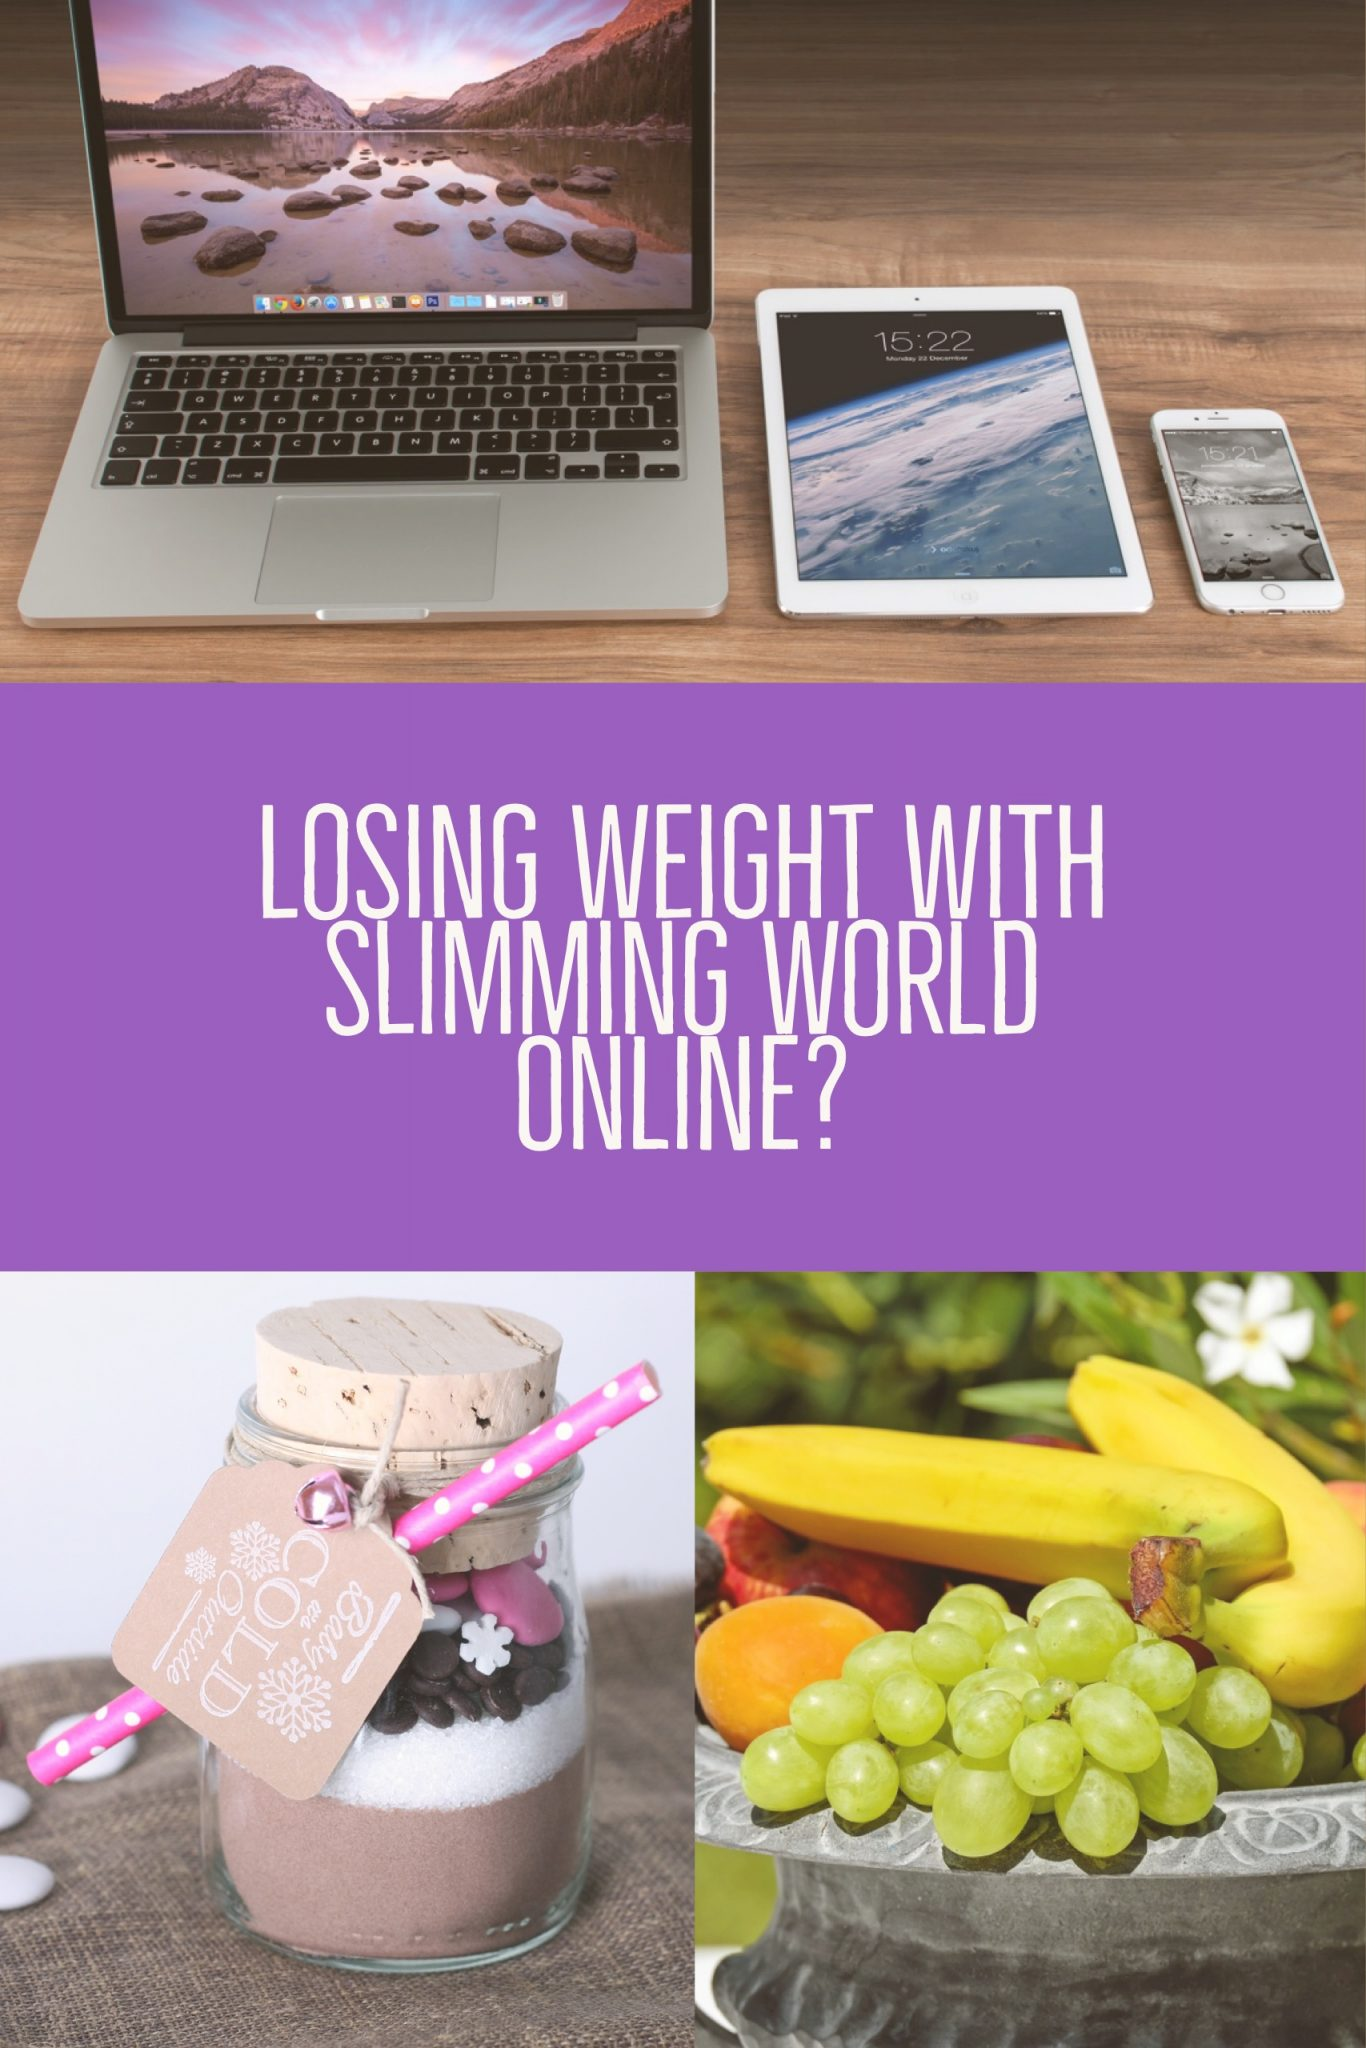 slimming world weight loss planner not working